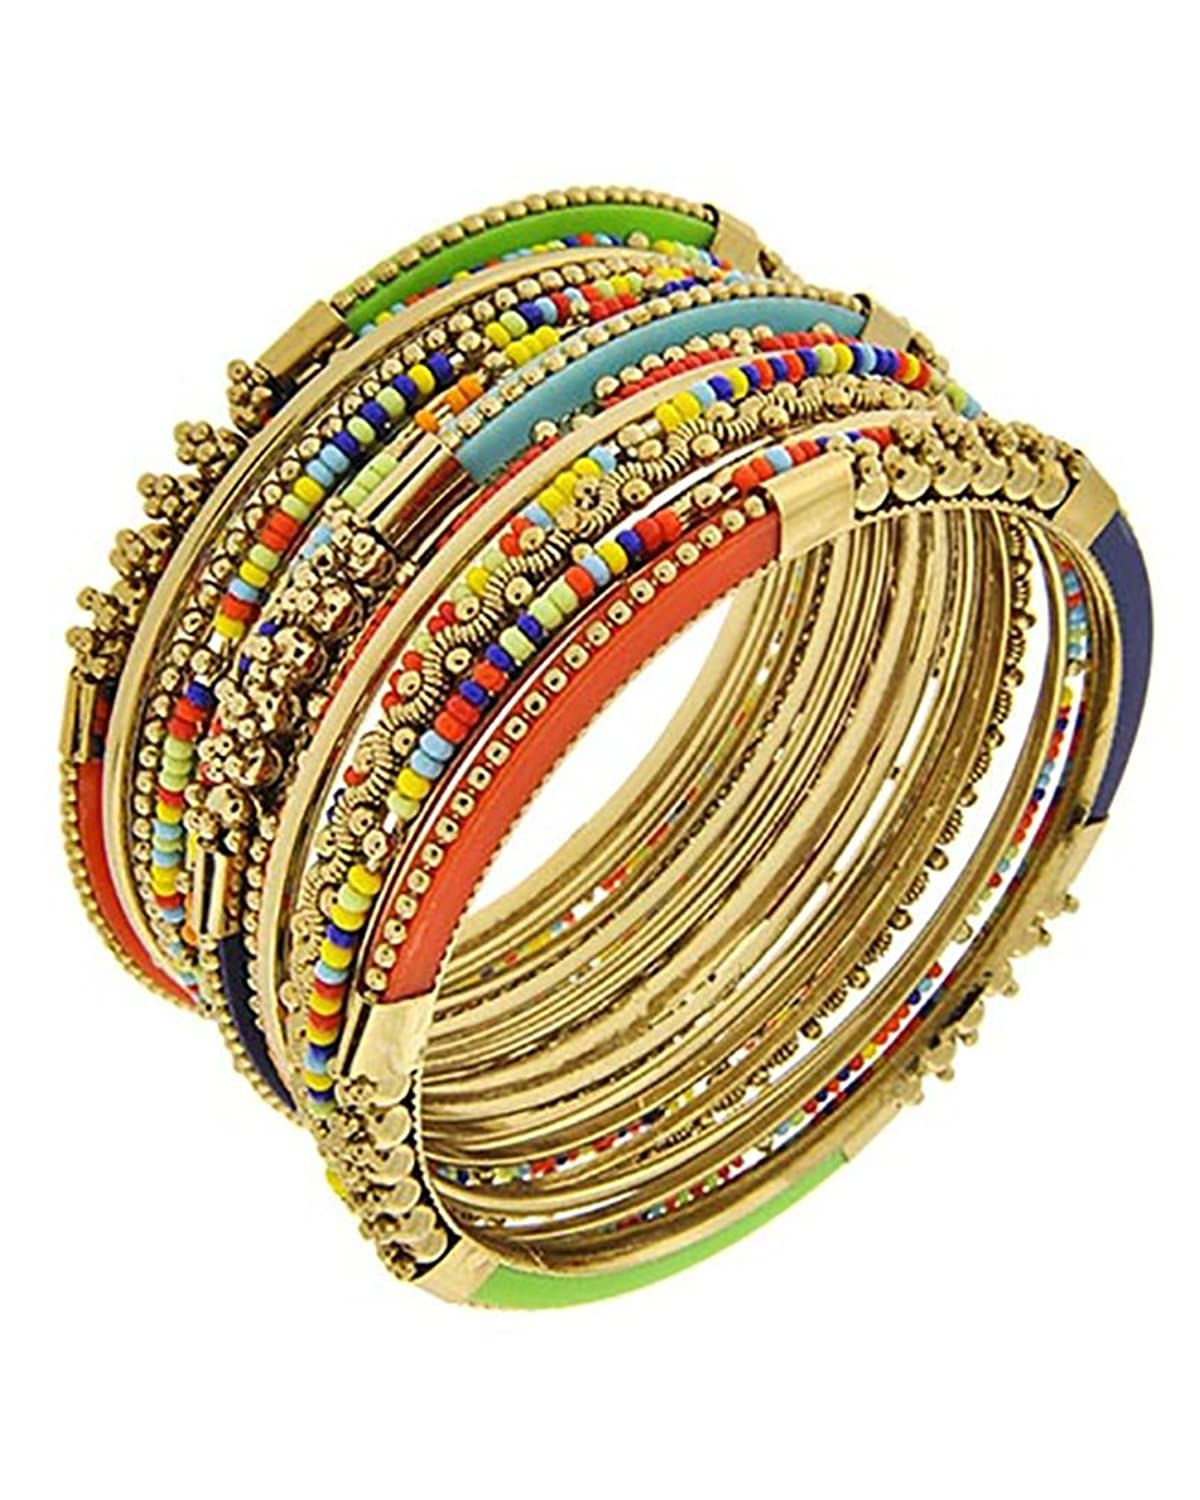 15 Piece Multi-Colored Antique Goldtone Stackable Bangle Bracelets